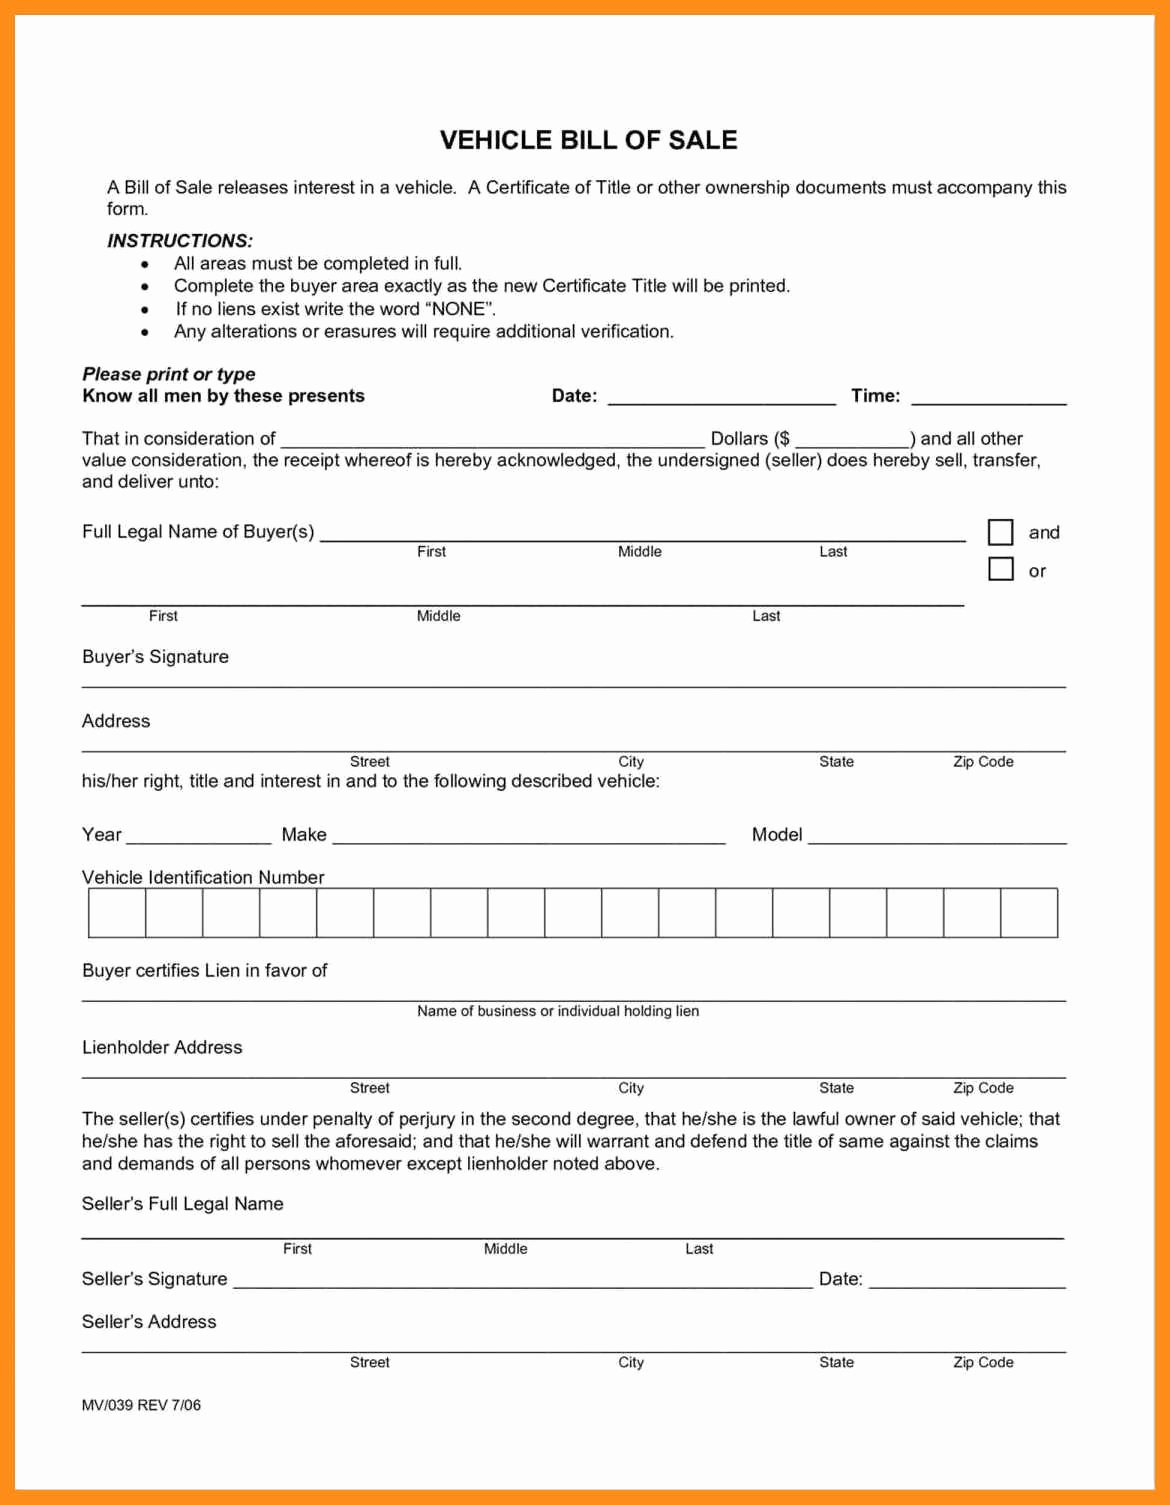 Alabama Bill Of Sale for Vehicle Luxury 11 12 as is Auto Bill Of Sale Template